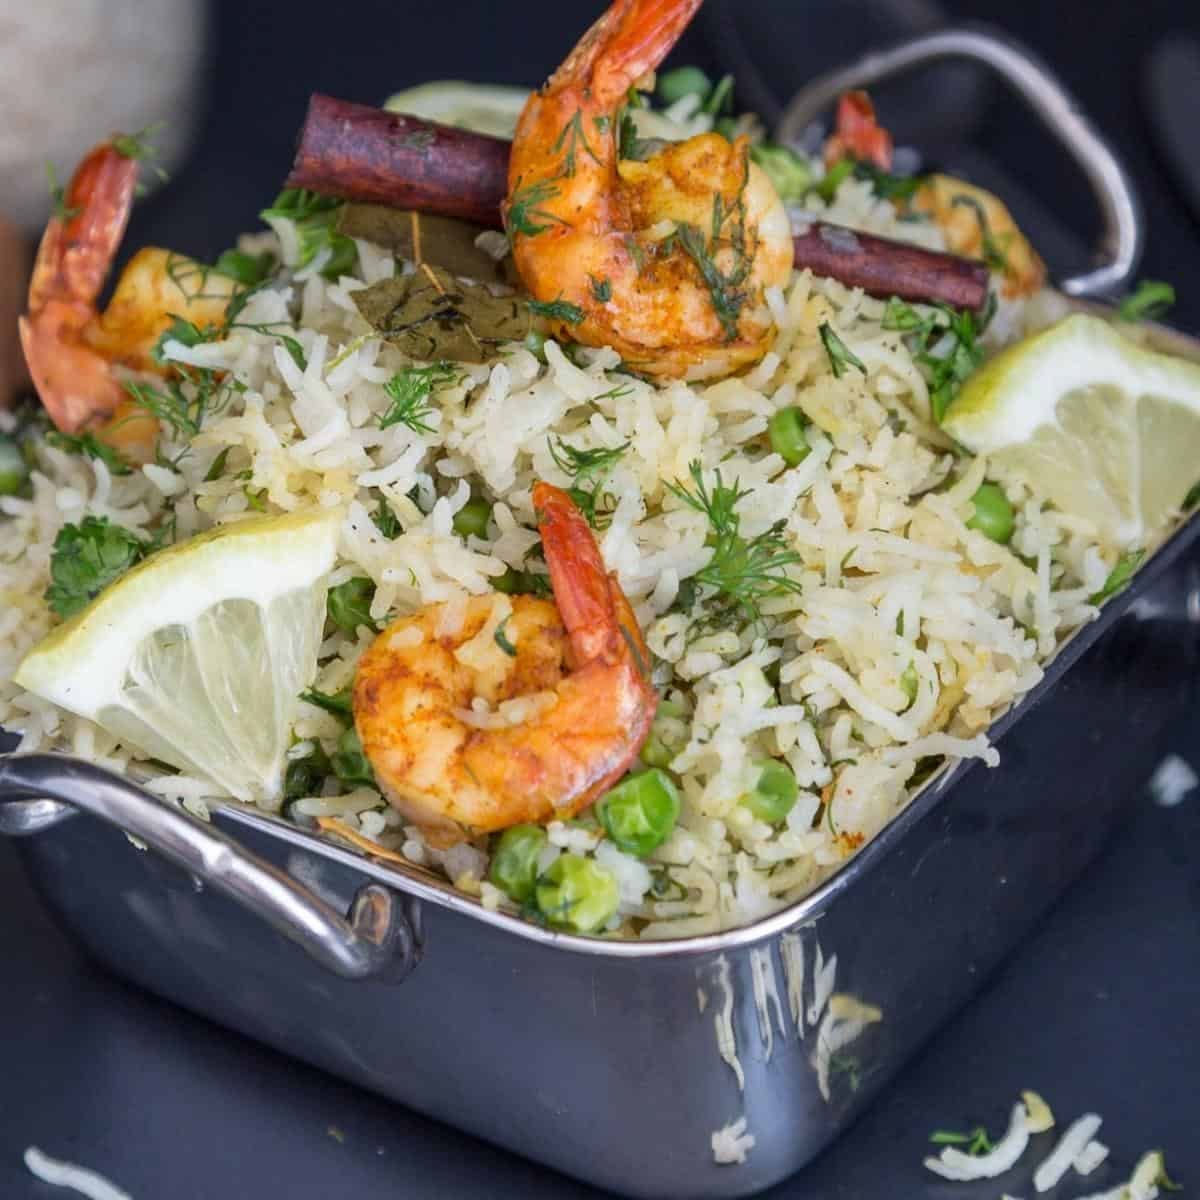 A skillet with shrimps and rice.